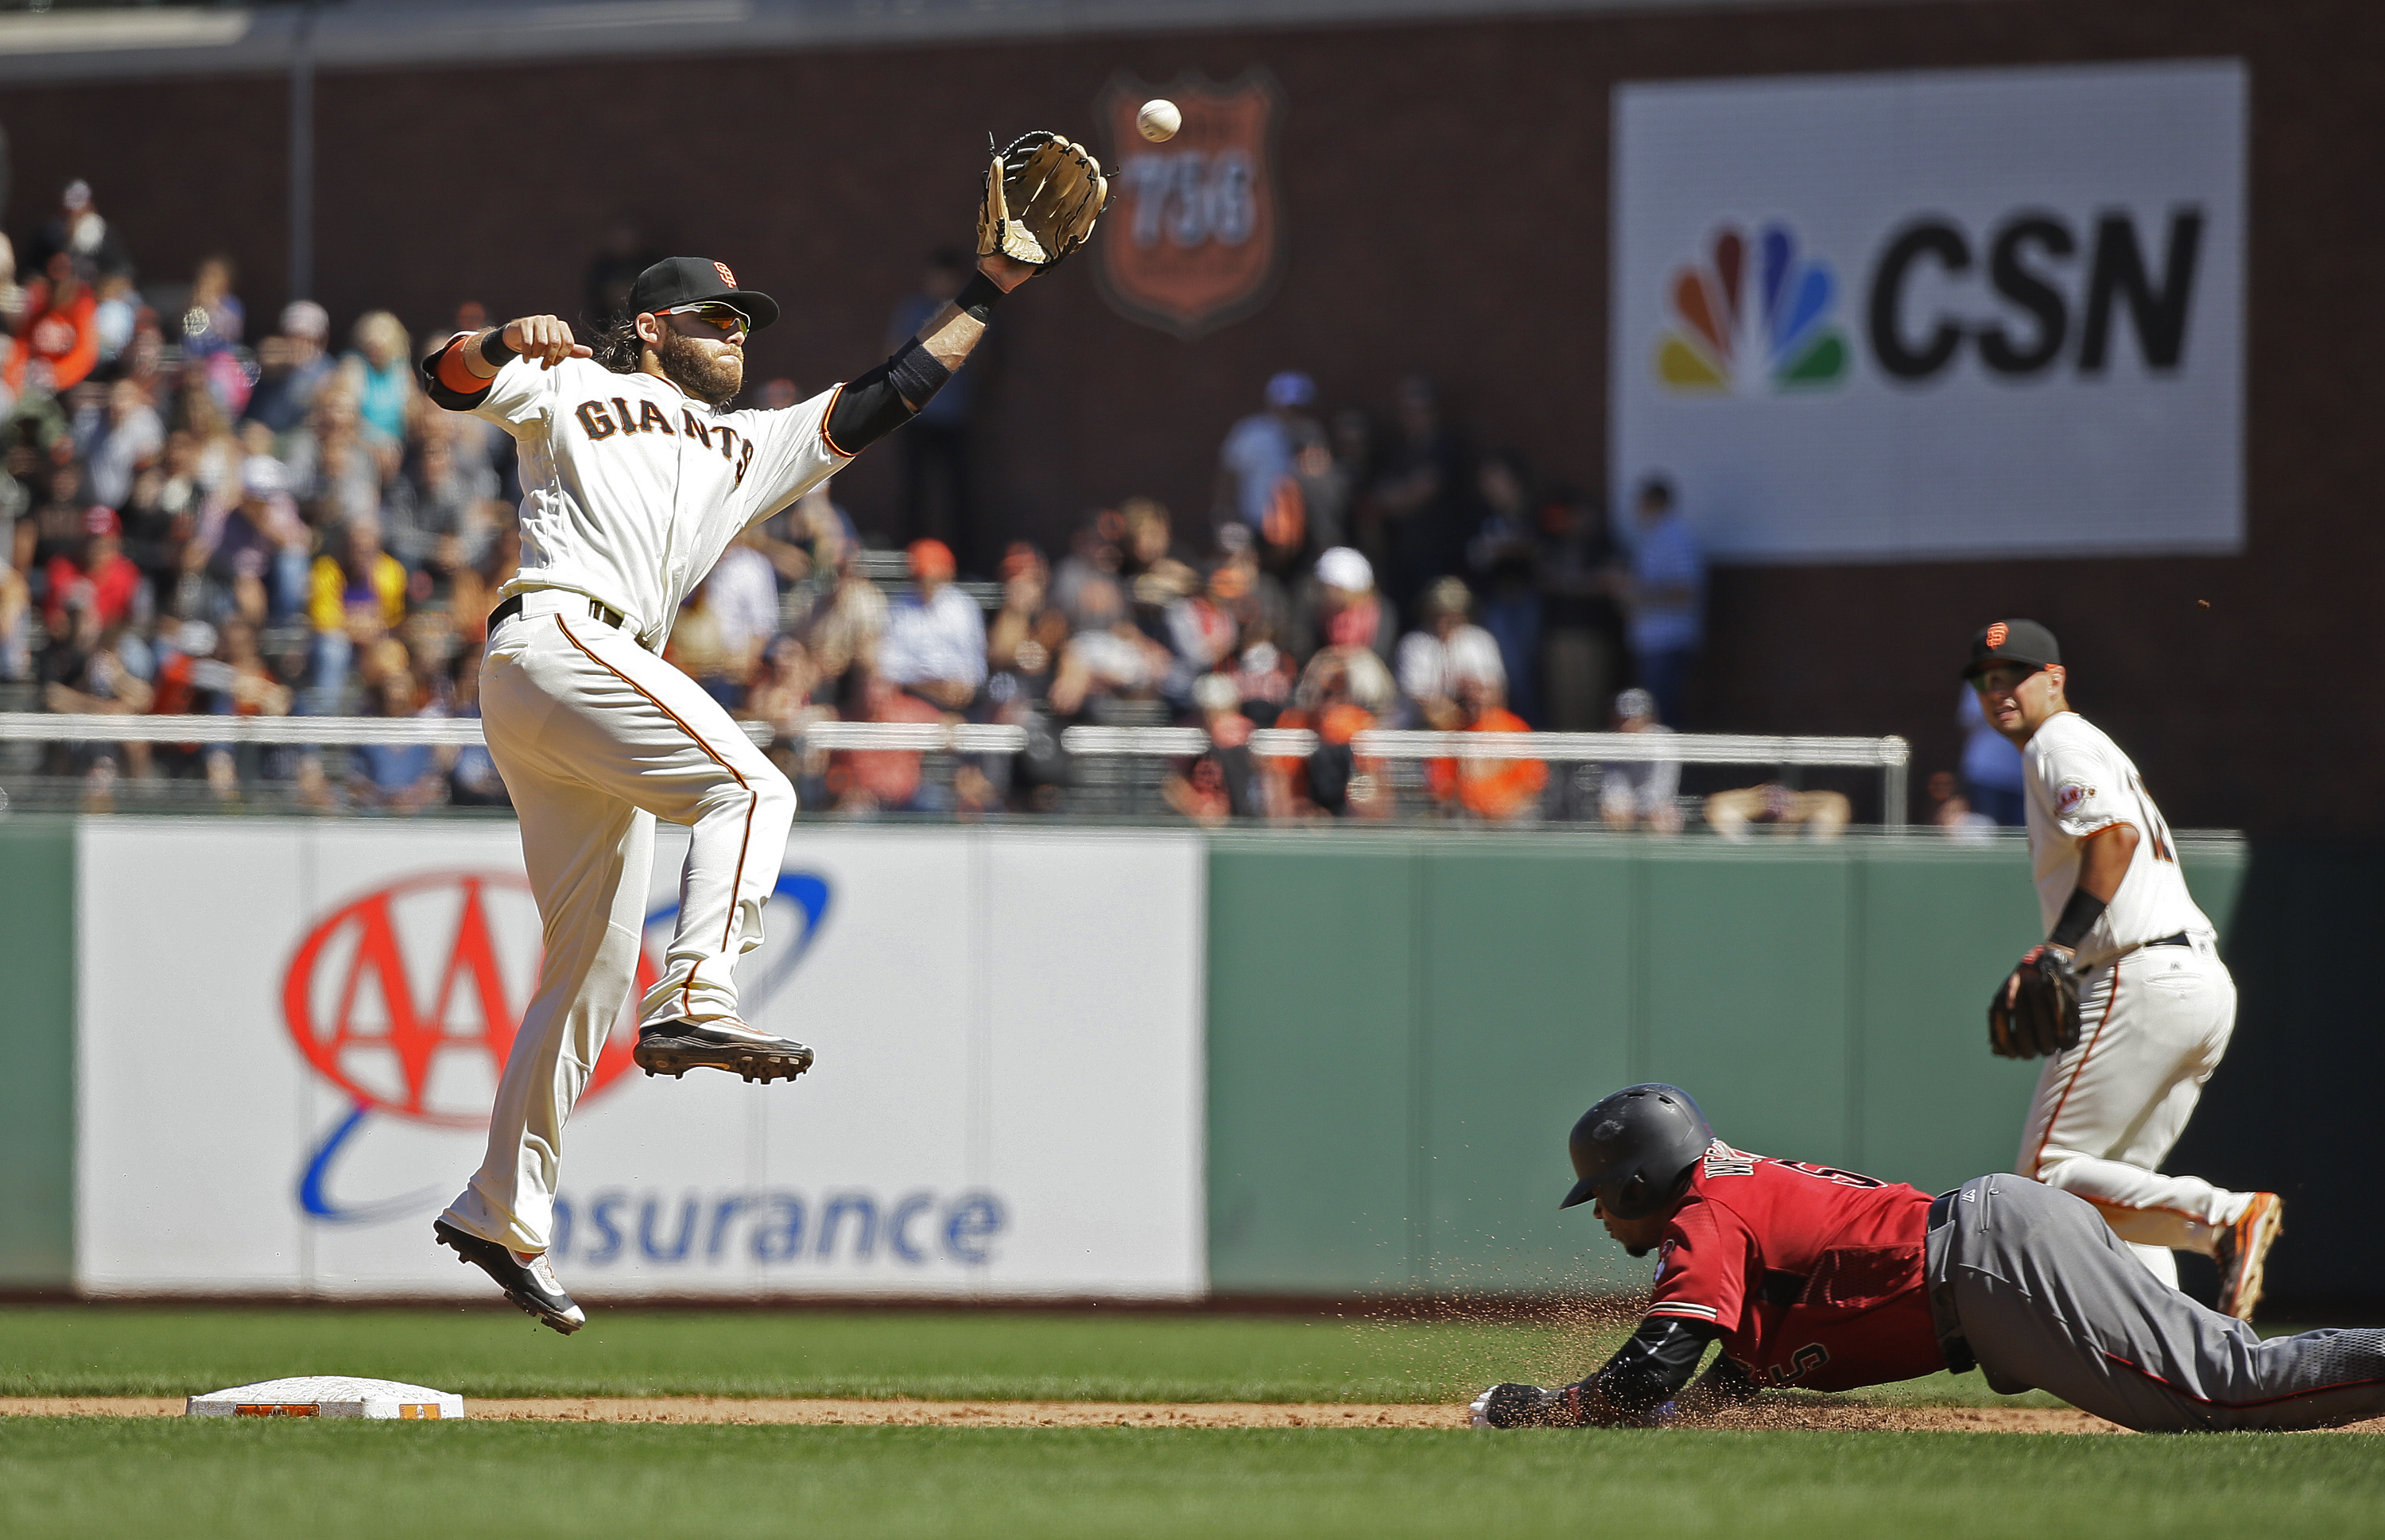 Arizona Diamondbacks' Rickie Weeks, right, goes sliding to steal second base as San Francisco Giants shortstop Brandon Crawford leaps for the throw in the sixth inning of a baseball game Wednesday, Aug. 31, 2016, in San Francisco. (AP Photo/Eric Risberg)